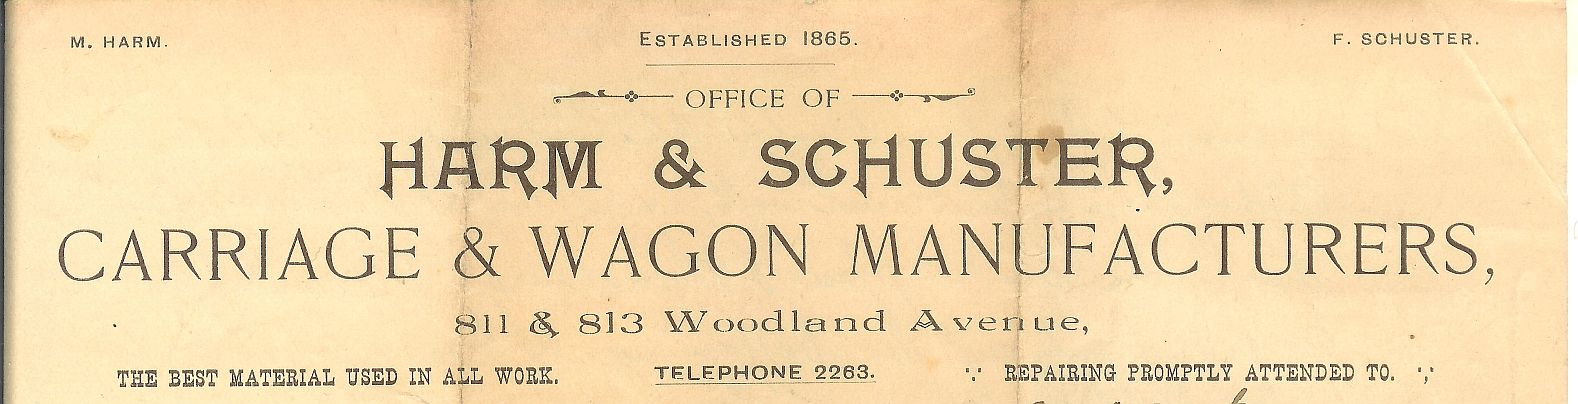 Harm & Schuster business letterhead